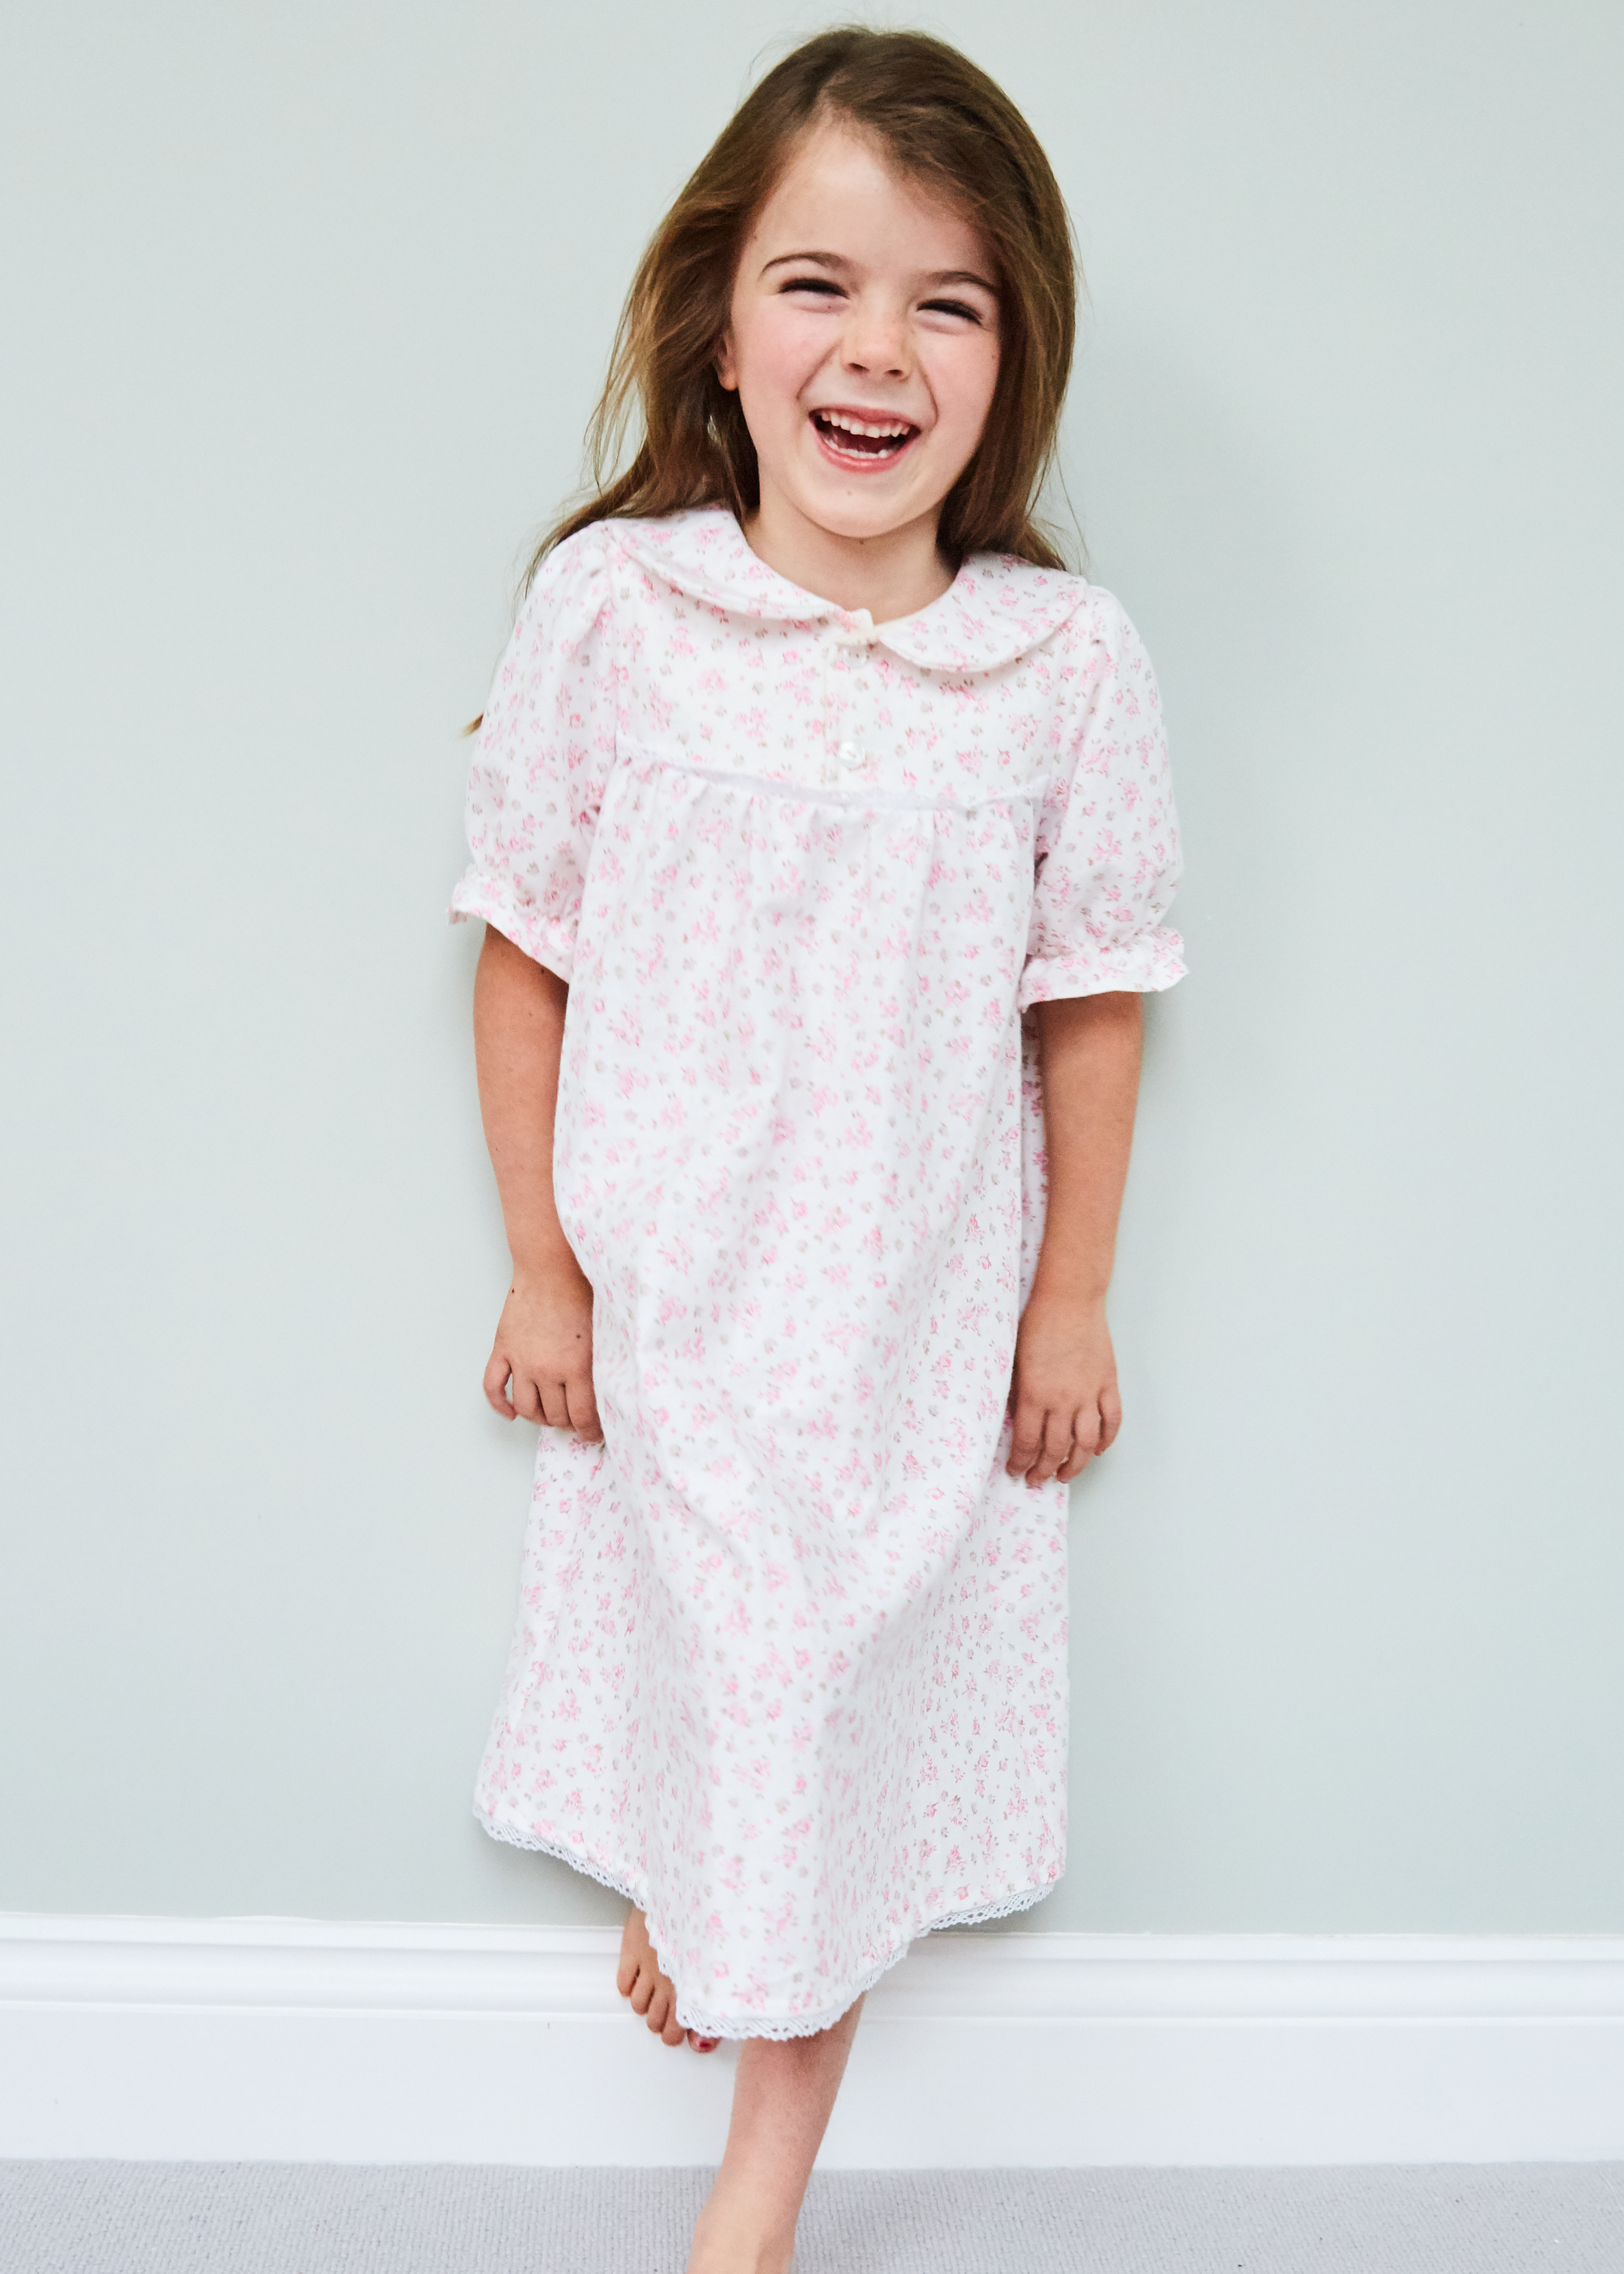 Nightie in tiny pink rose bud print